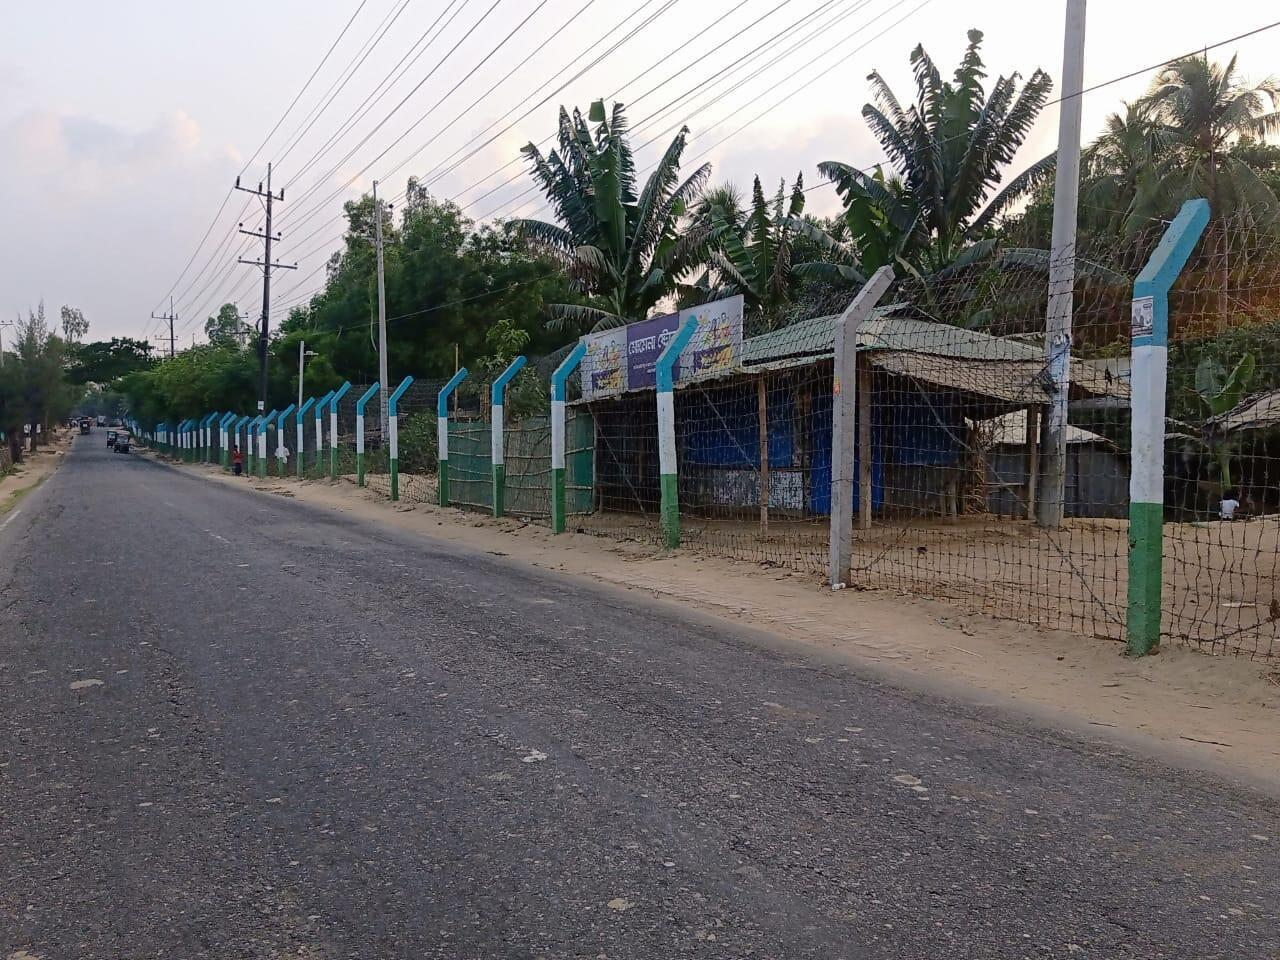 Jadimura Camp 27 in Cox's Bazar, fenced with barbed wire. Photo taken April 30, 2021.